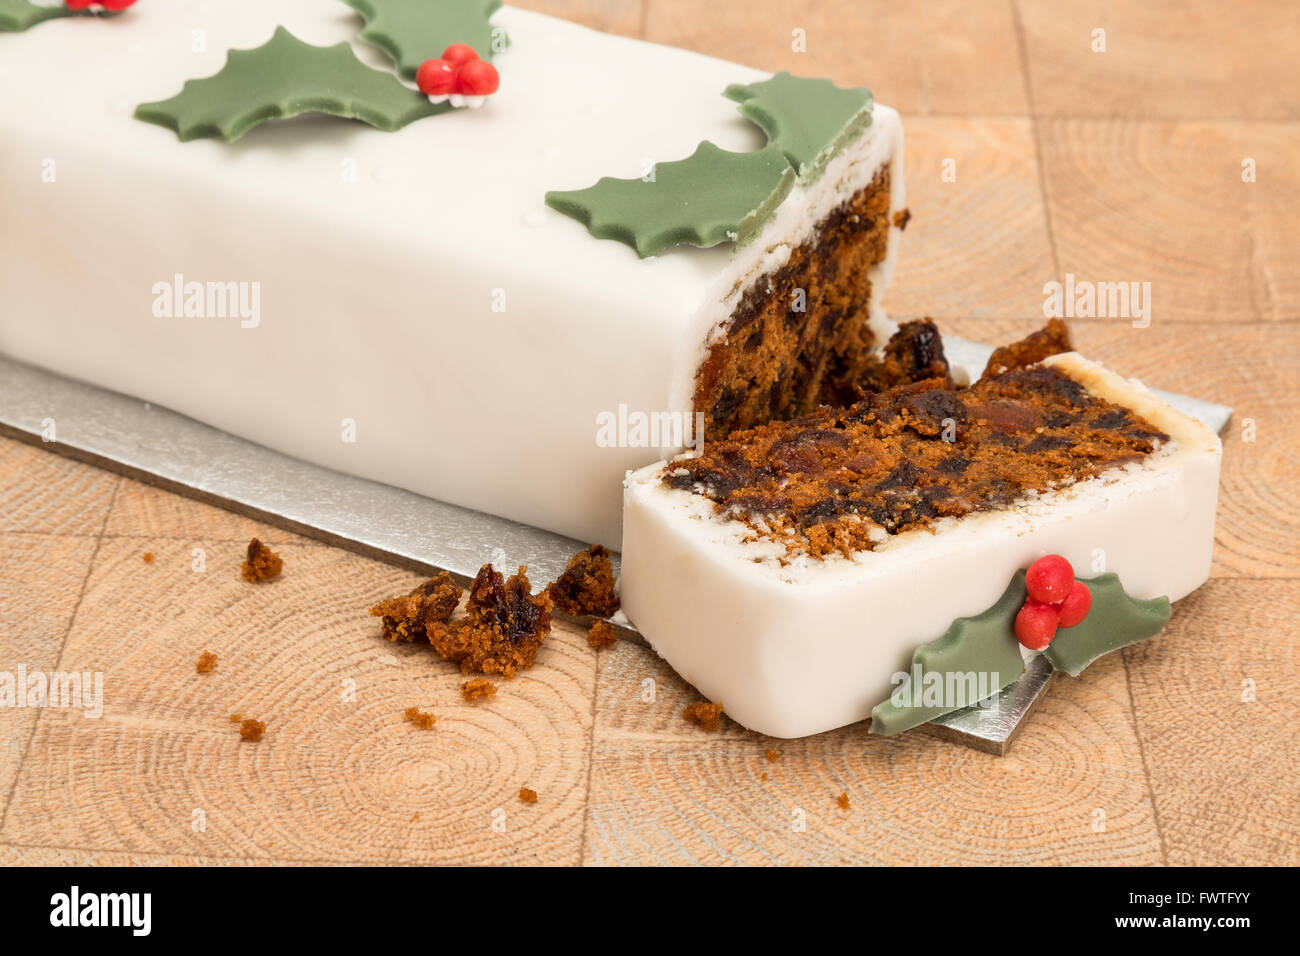 Christmas cake with a slice taken out, shallow depth of field - Stock Image